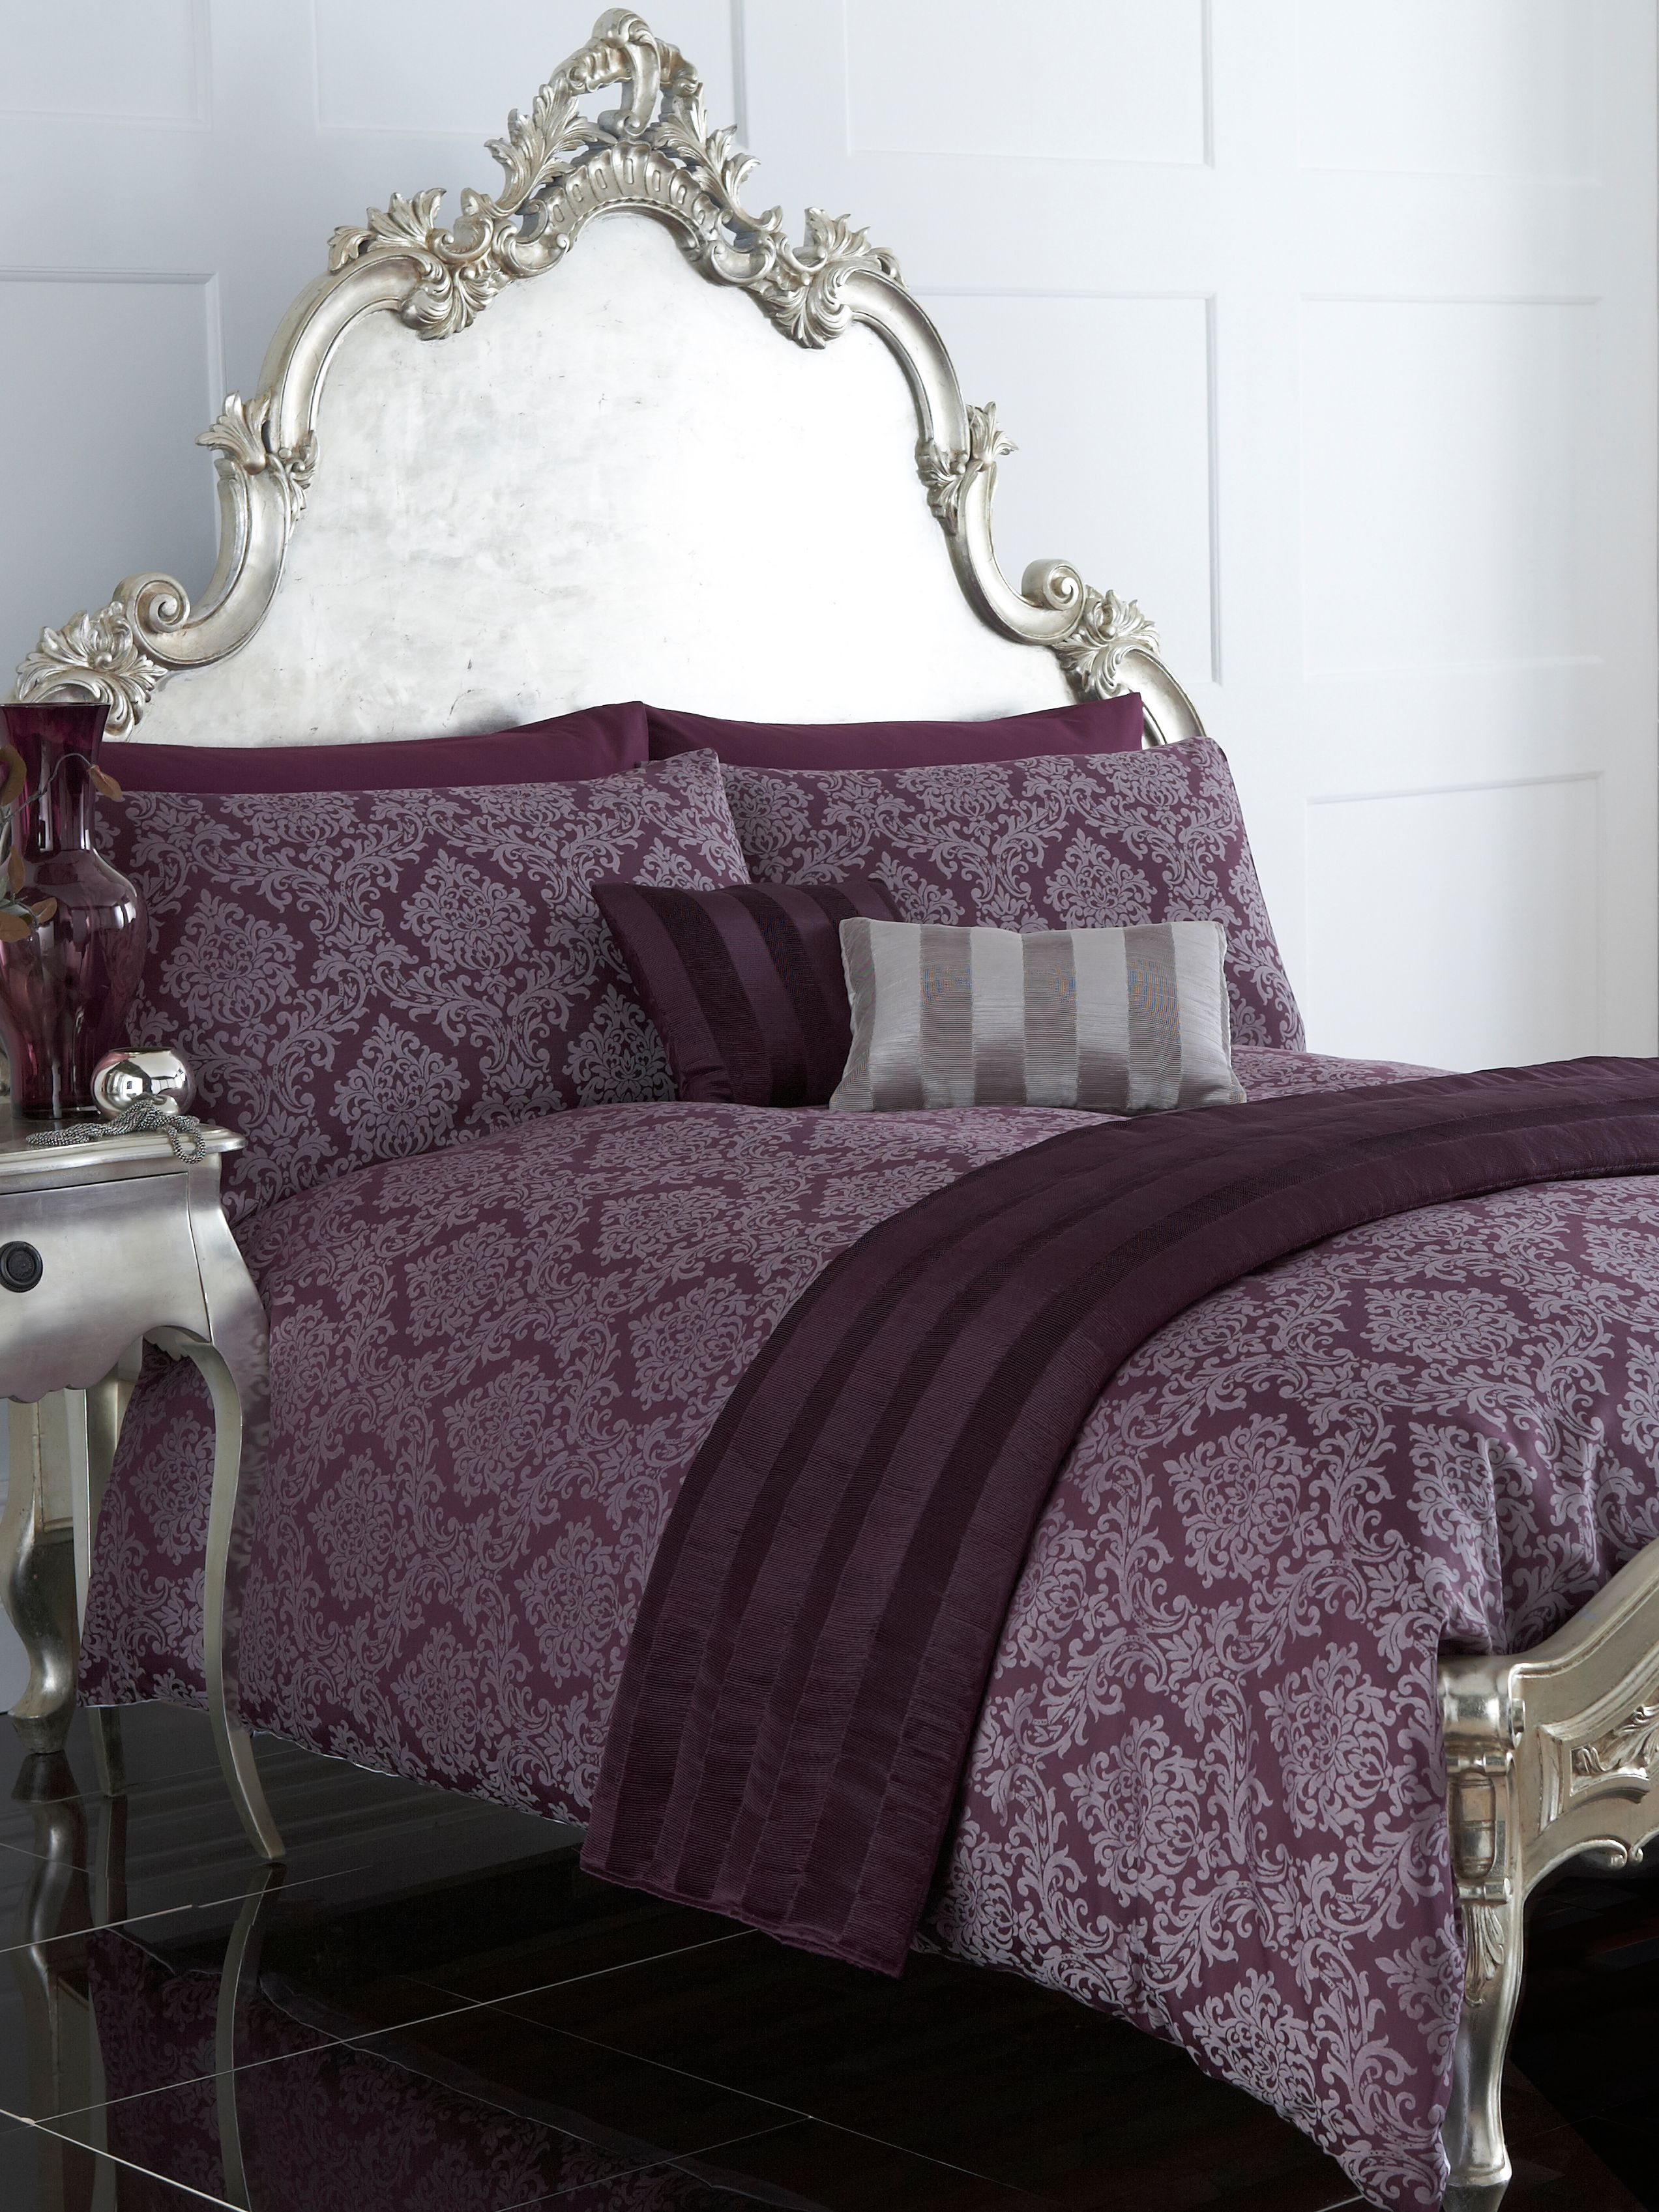 Damask jacquard bed linen in purple